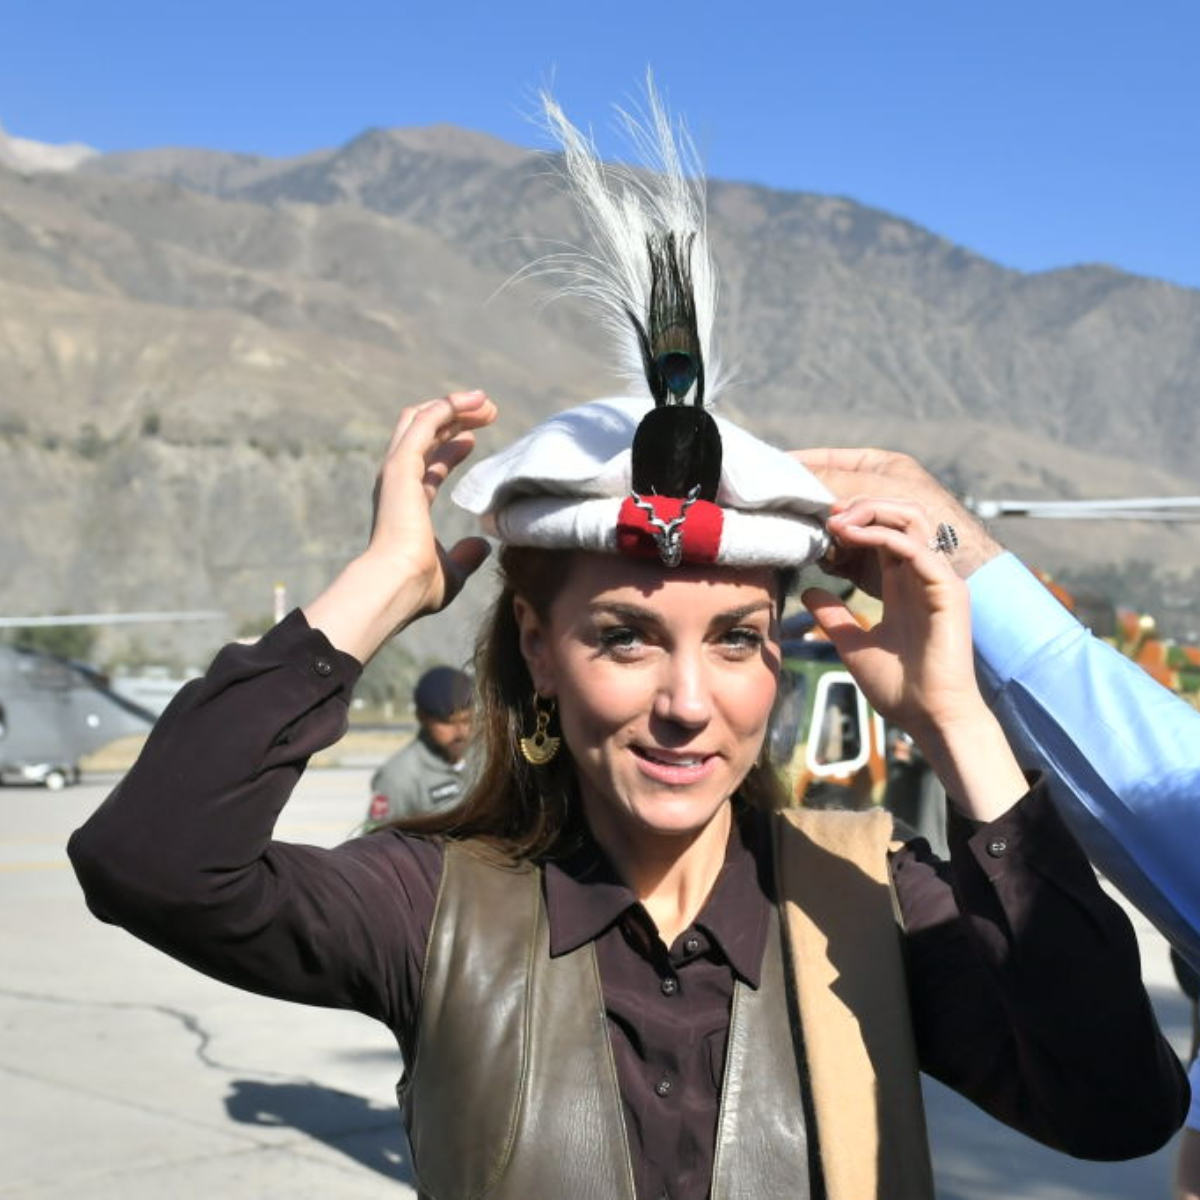 PHOTOS: Kate Middleton evokes memories of Princess Diana as she dons the traditional Chitrali hat in Pakistan